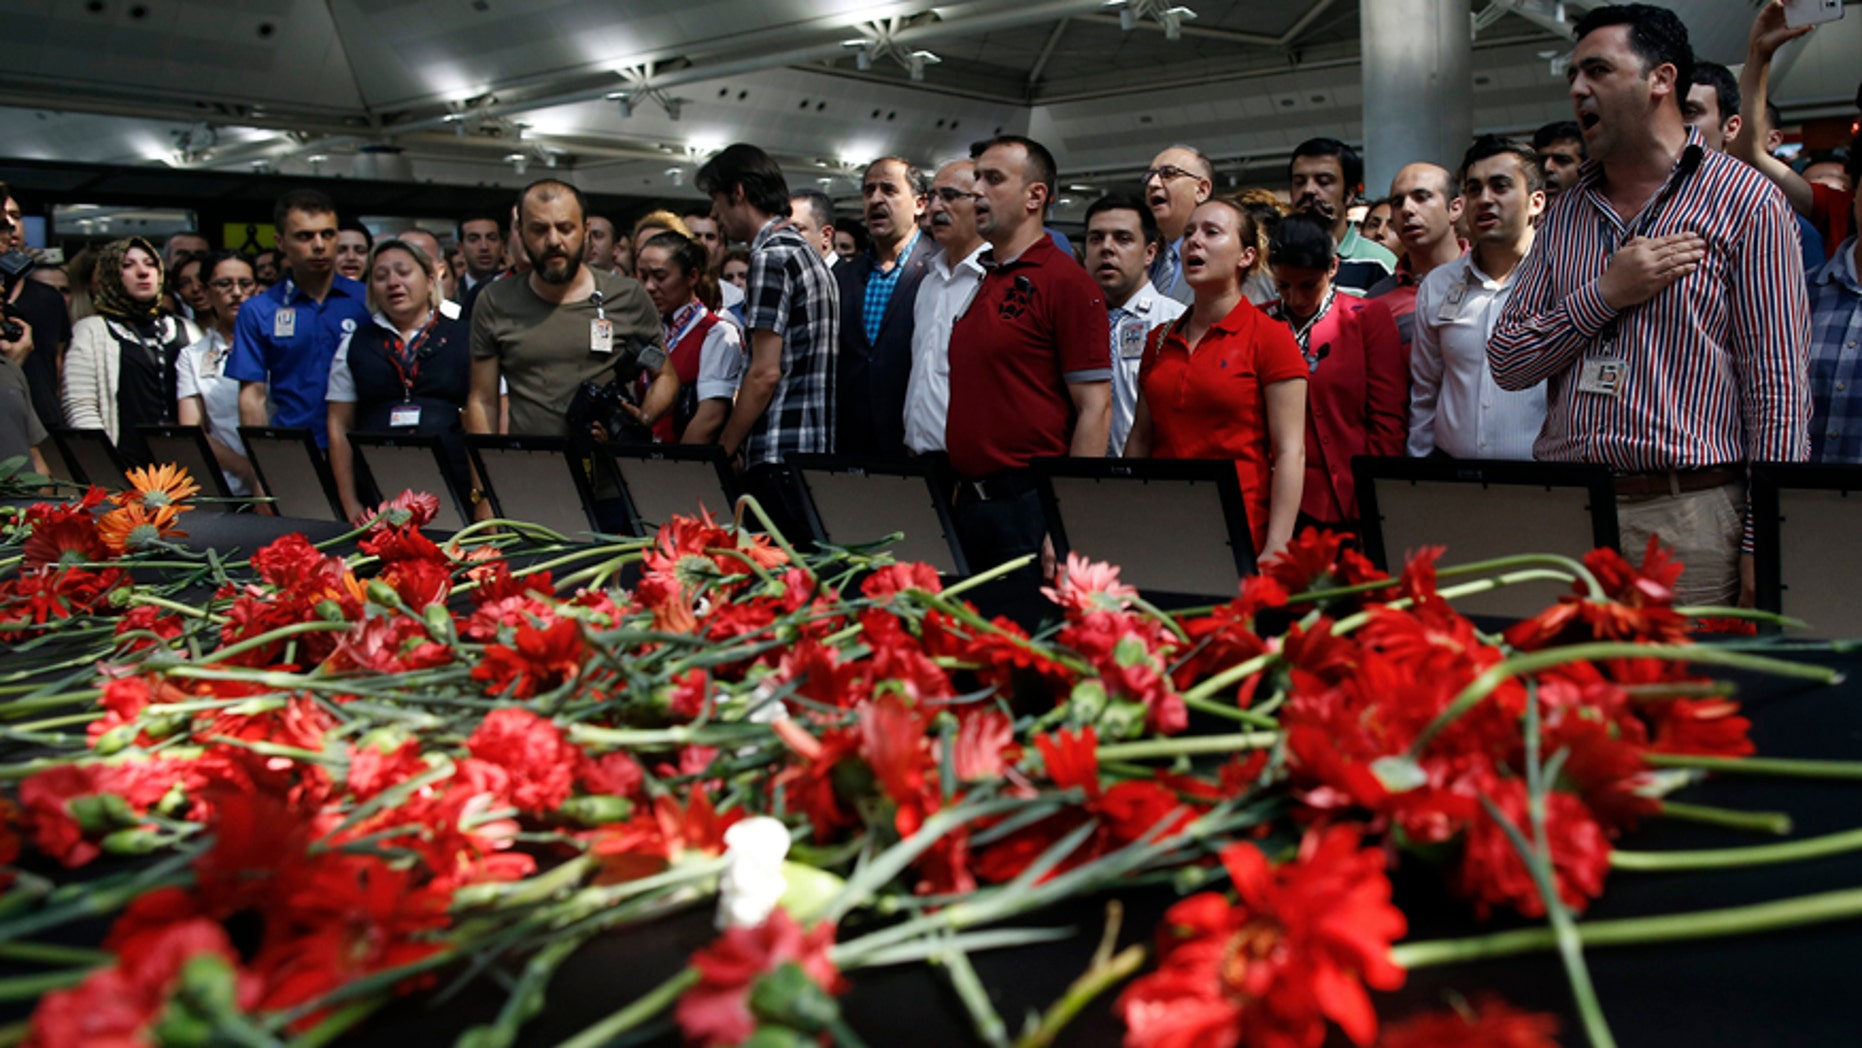 June 30, 2016: Family members, colleagues and friends of the victims of Tuesday blasts gather for a memorial ceremony at the Ataturk Airport in Istanbul.